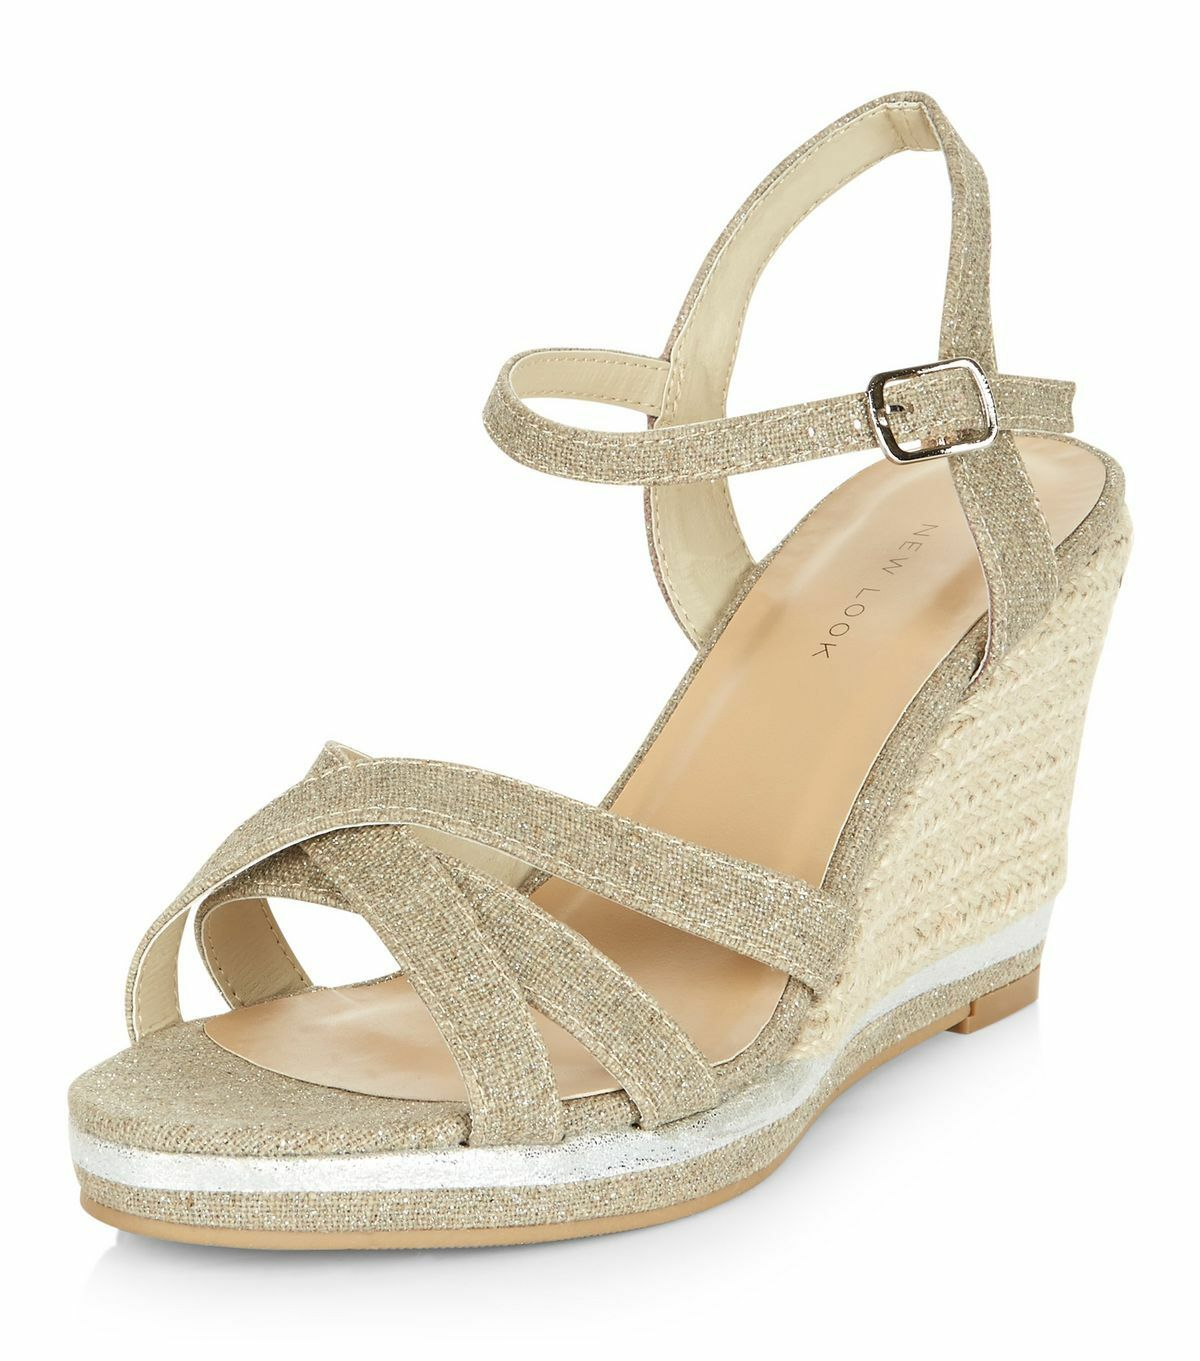 WOMENS NEW LOOK SIZE 9 43 SILVER BEIGE WEDGE SLINGBACK TRANSVESTITE CD SHOES BN